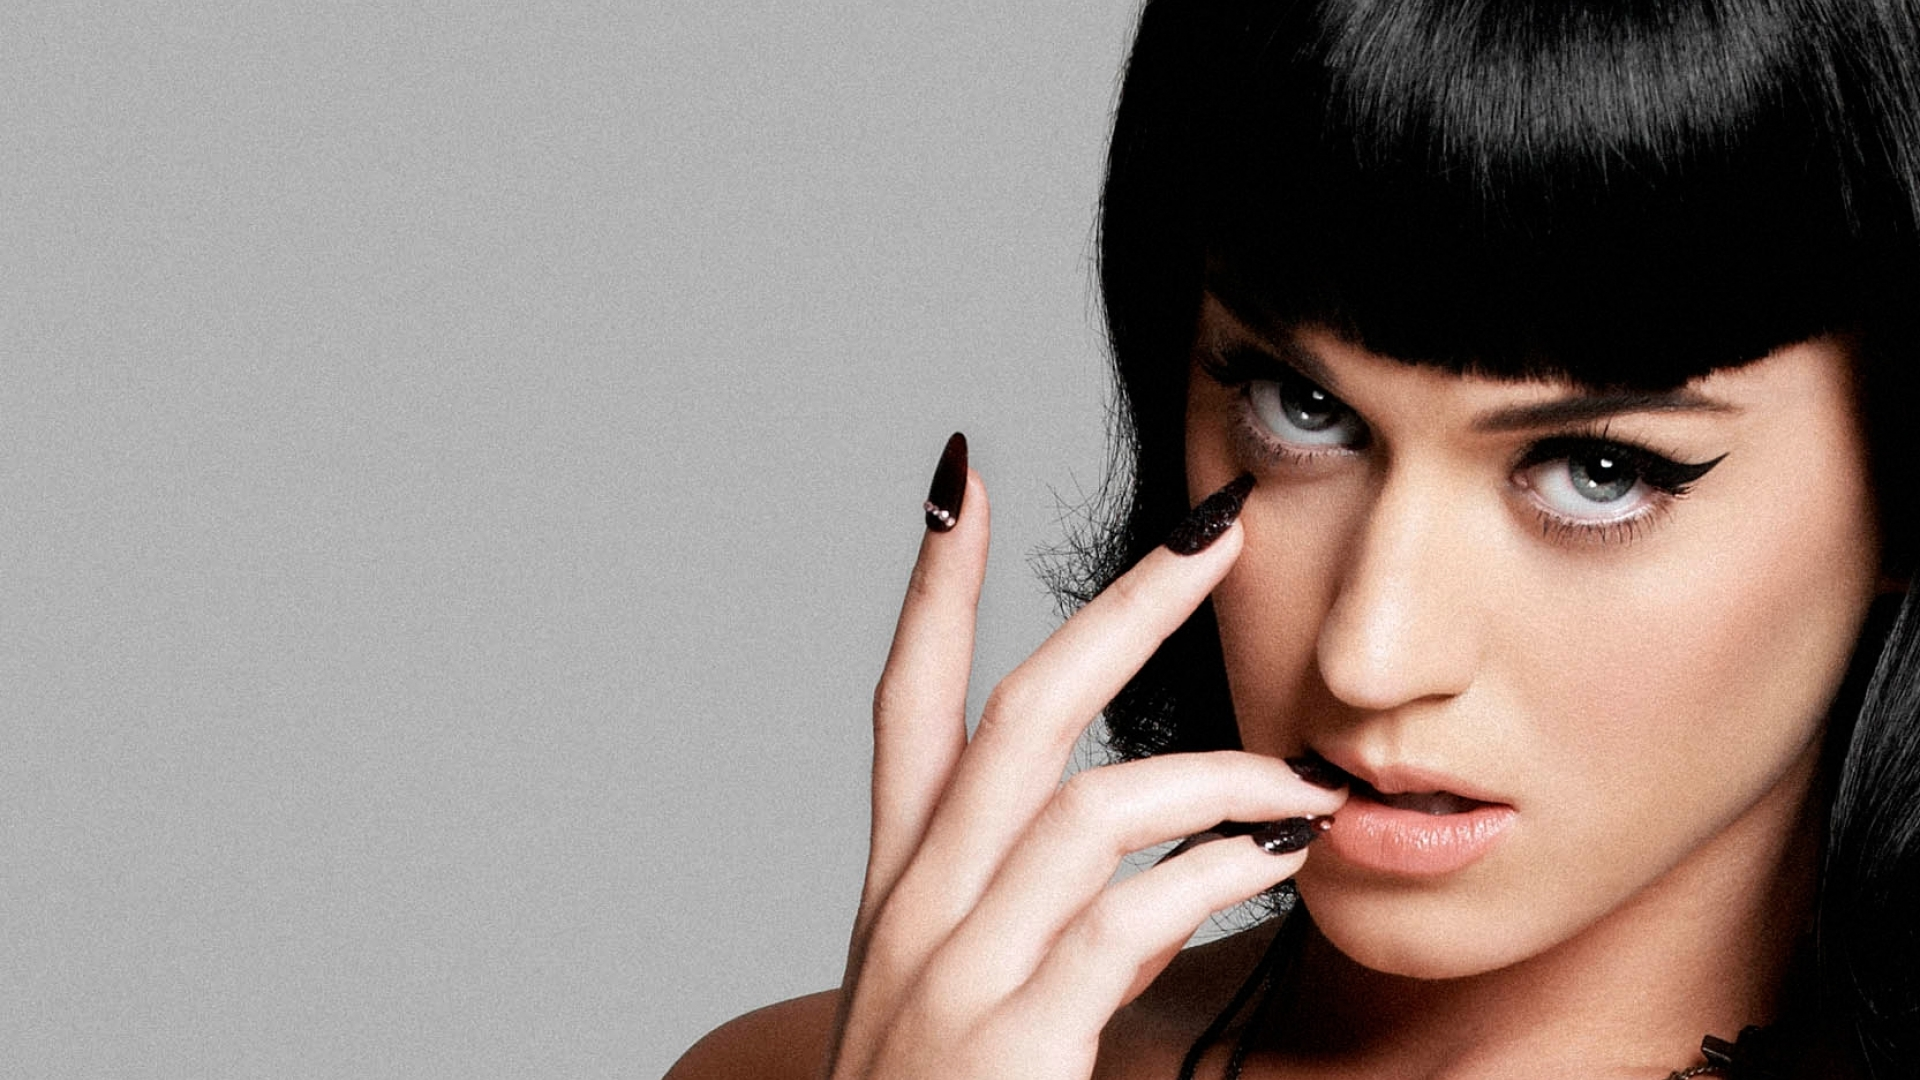 Katy-Perry-Stunning-Wallpaper